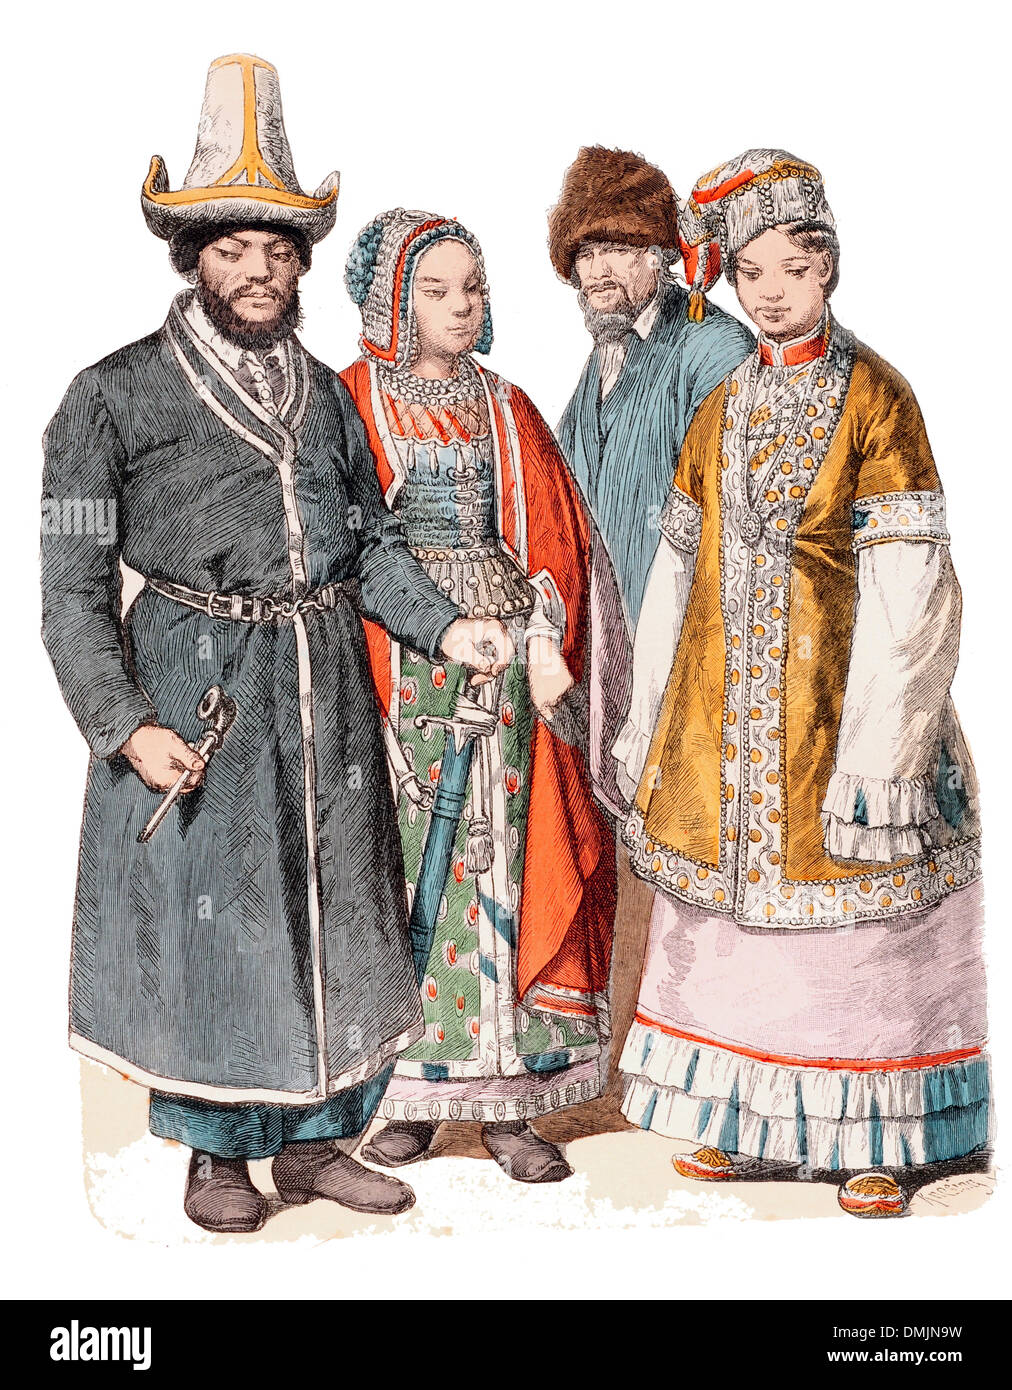 19th century XIX 1800s Inhabitants of the Russian Steppes - Stock Image